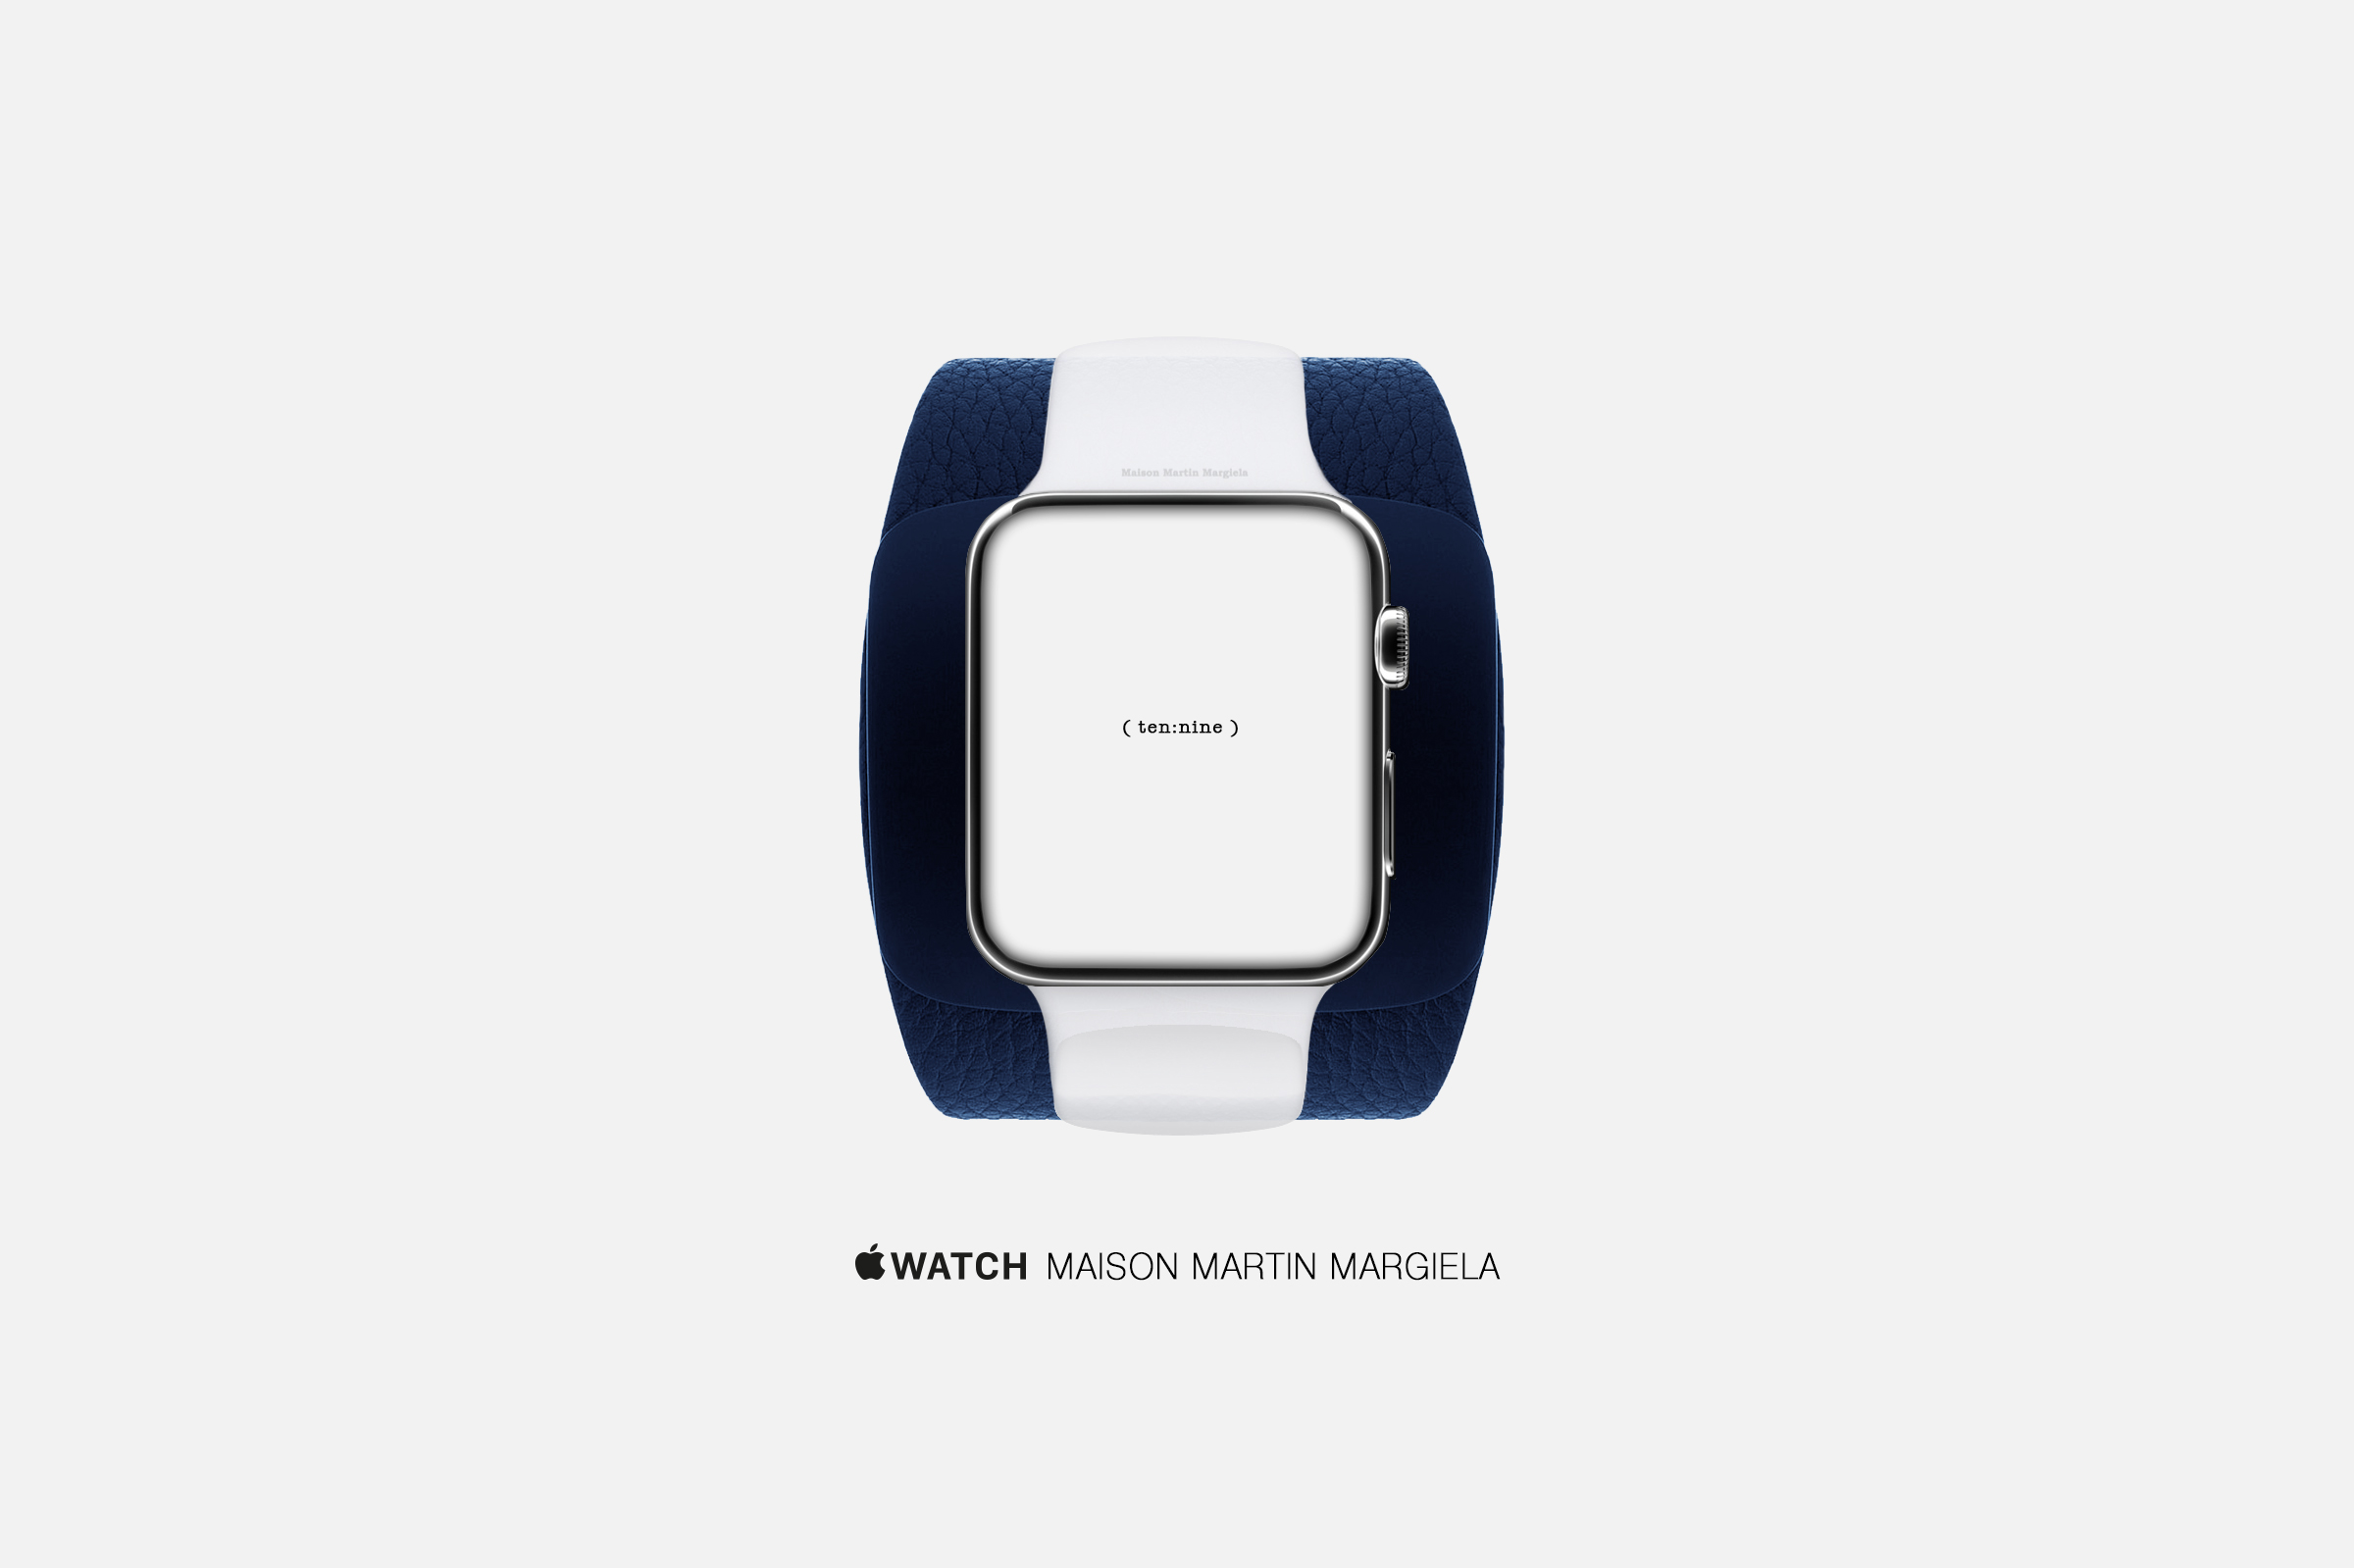 An artist's concept of an Apple Watch by Maison Martin Margiela.